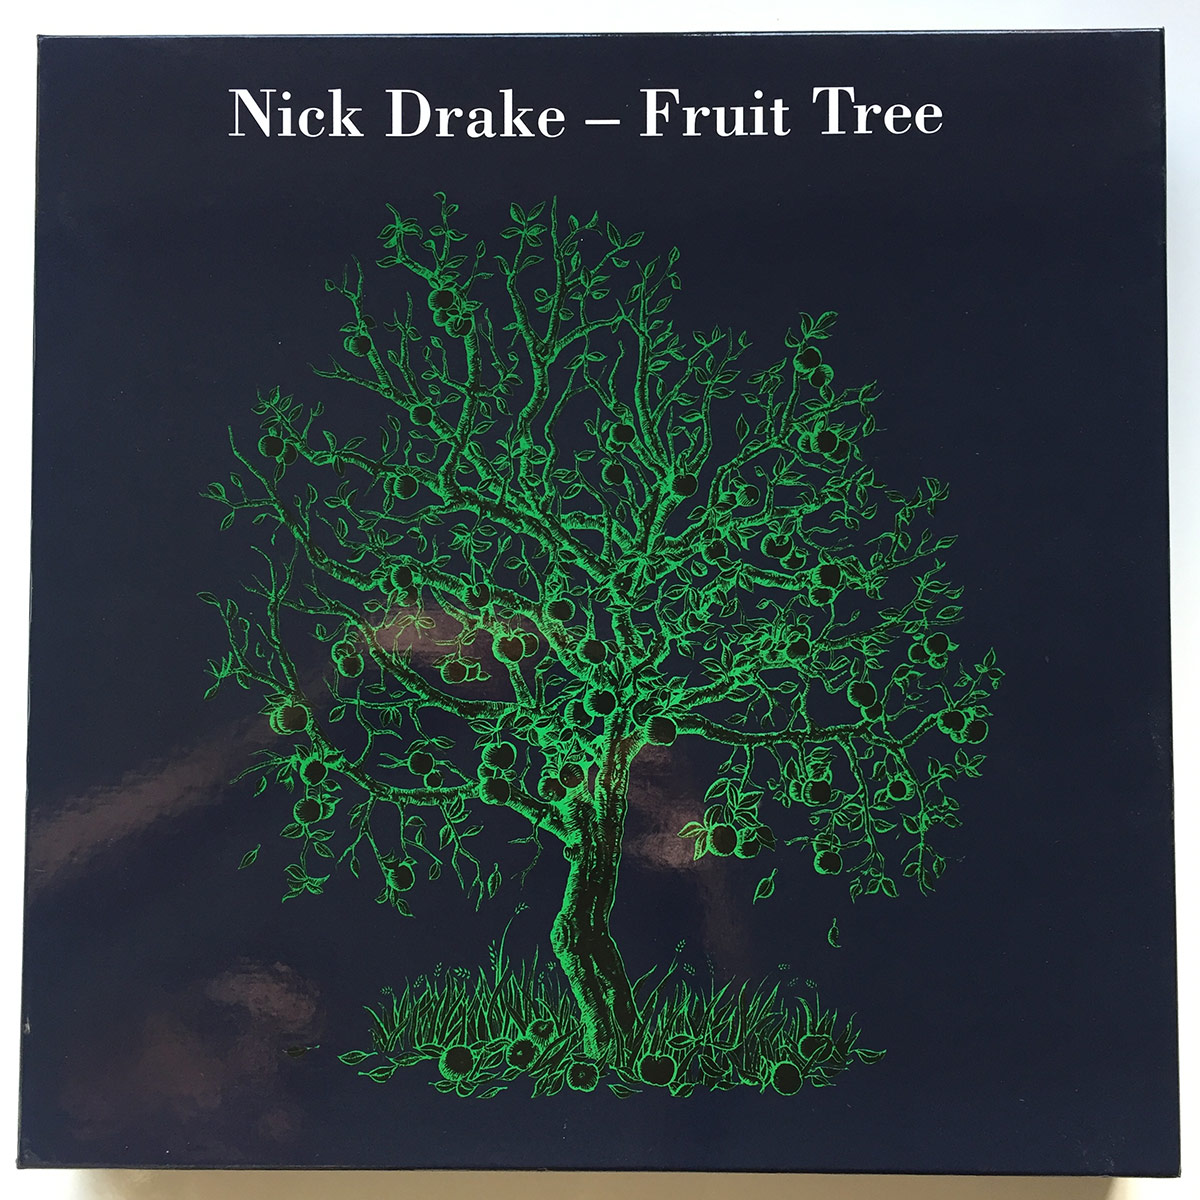 Nick Drake – Fruit Tree artwork